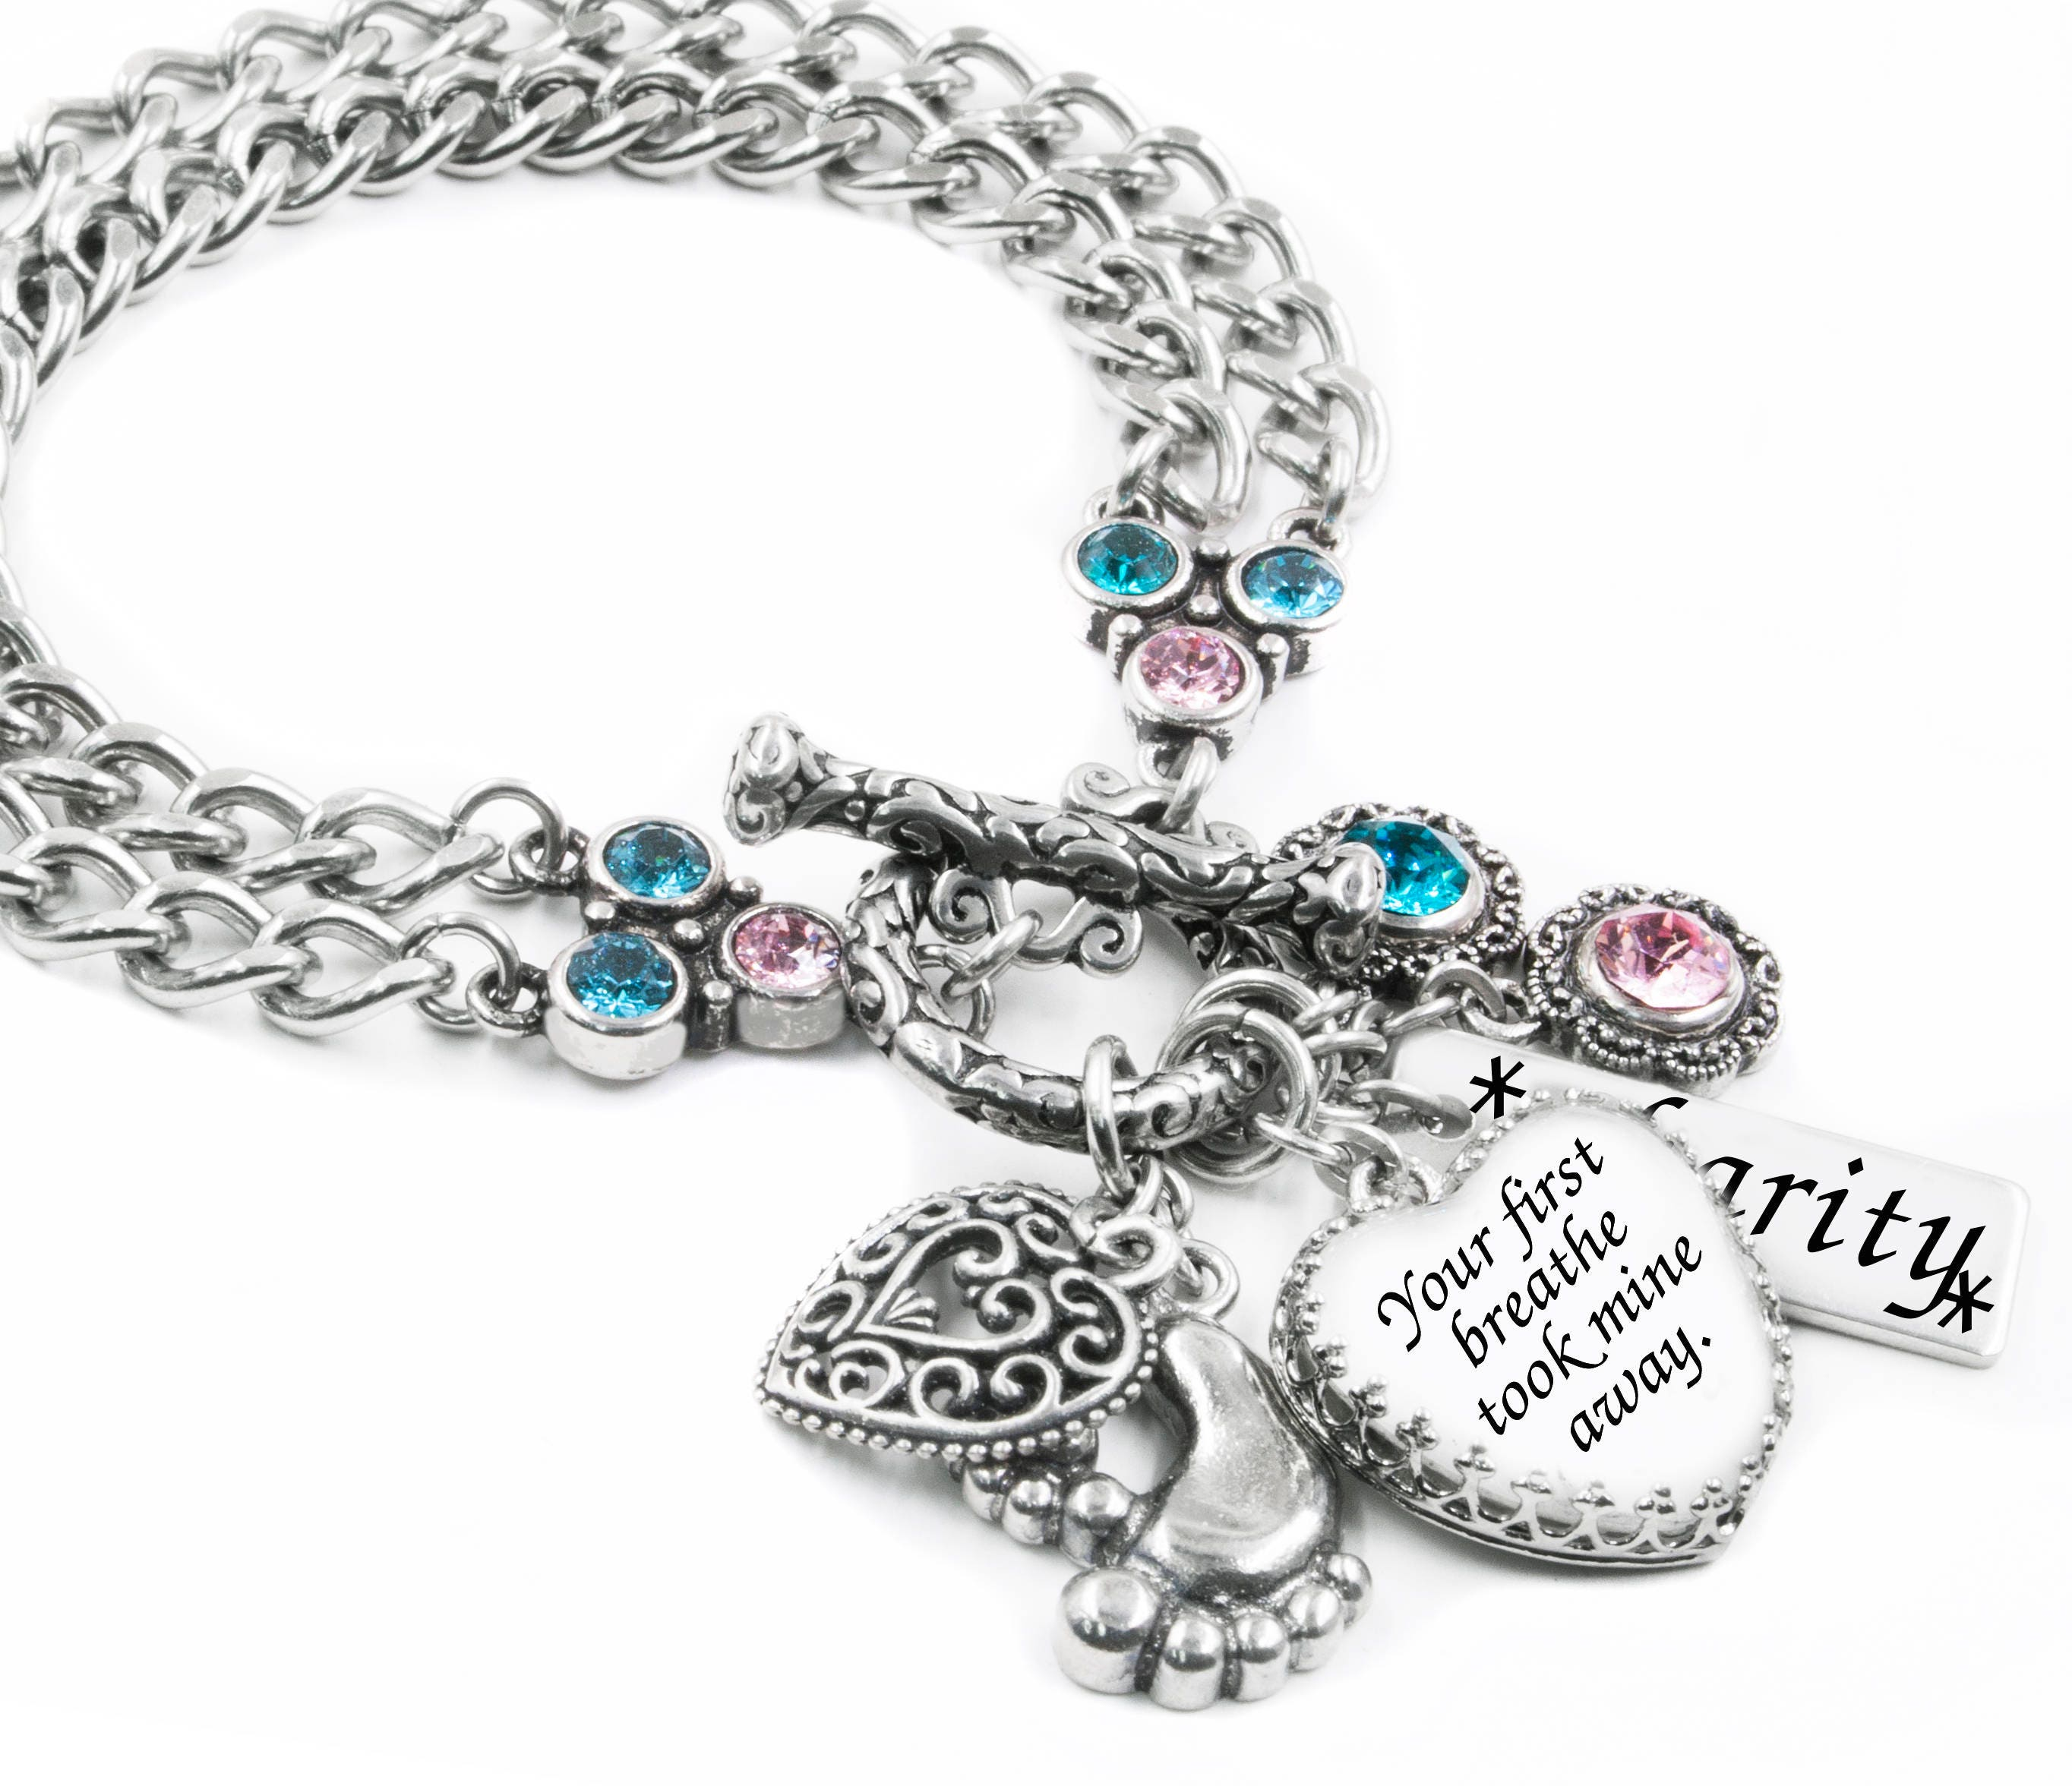 ideas and day gifts s best double for gift top bracelet expandable heart mothers motheranddaughterbracelet finder targetus com daughters mother